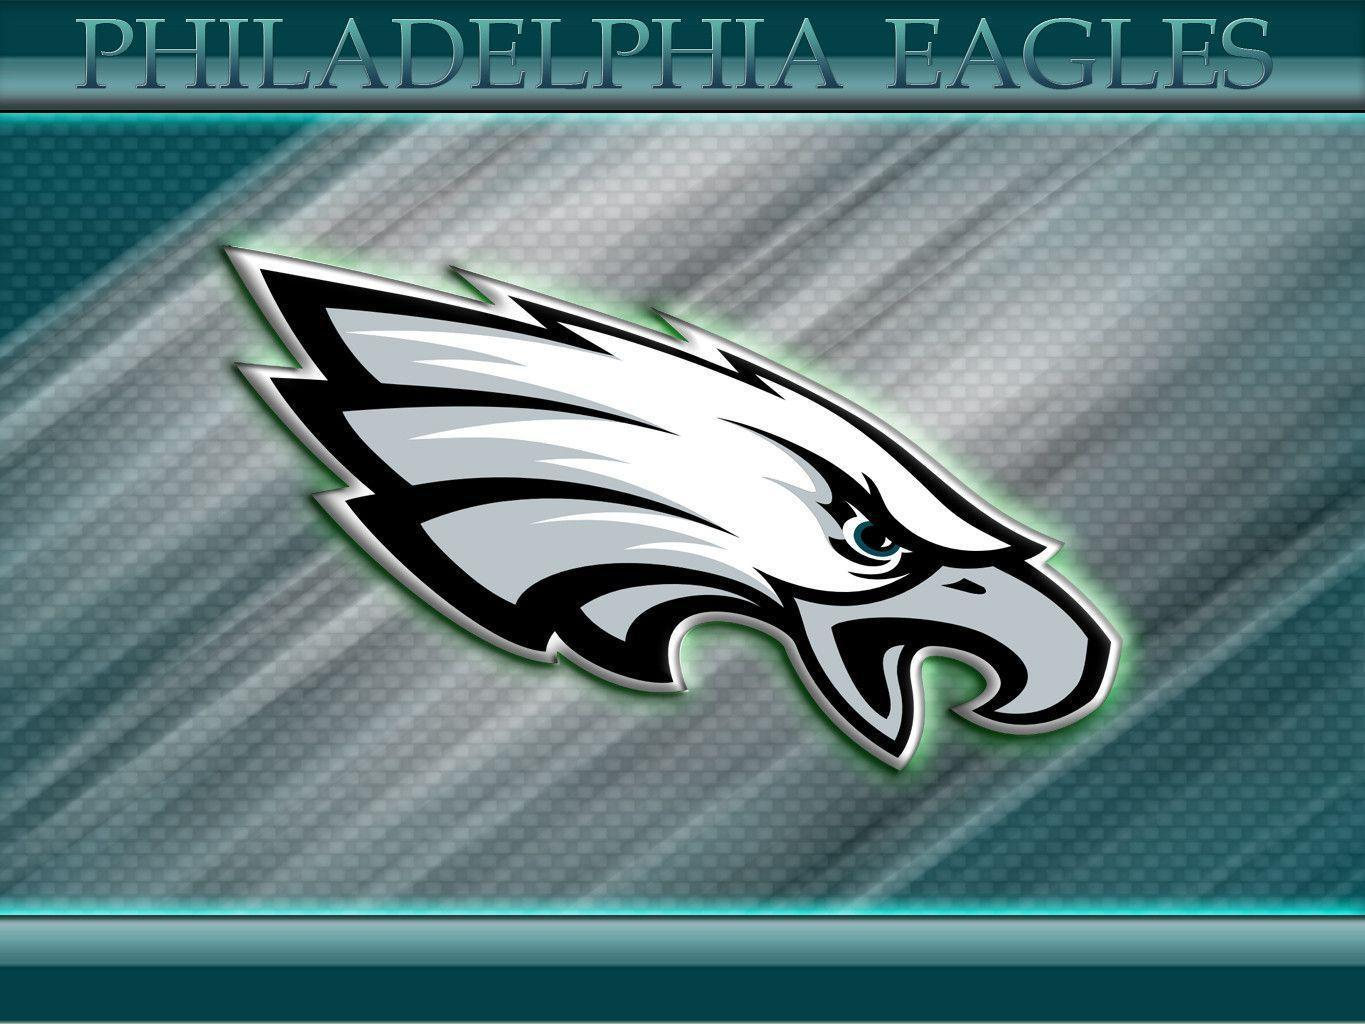 Philadelphia Eagles Background Pics 26065 Images | wallgraf.